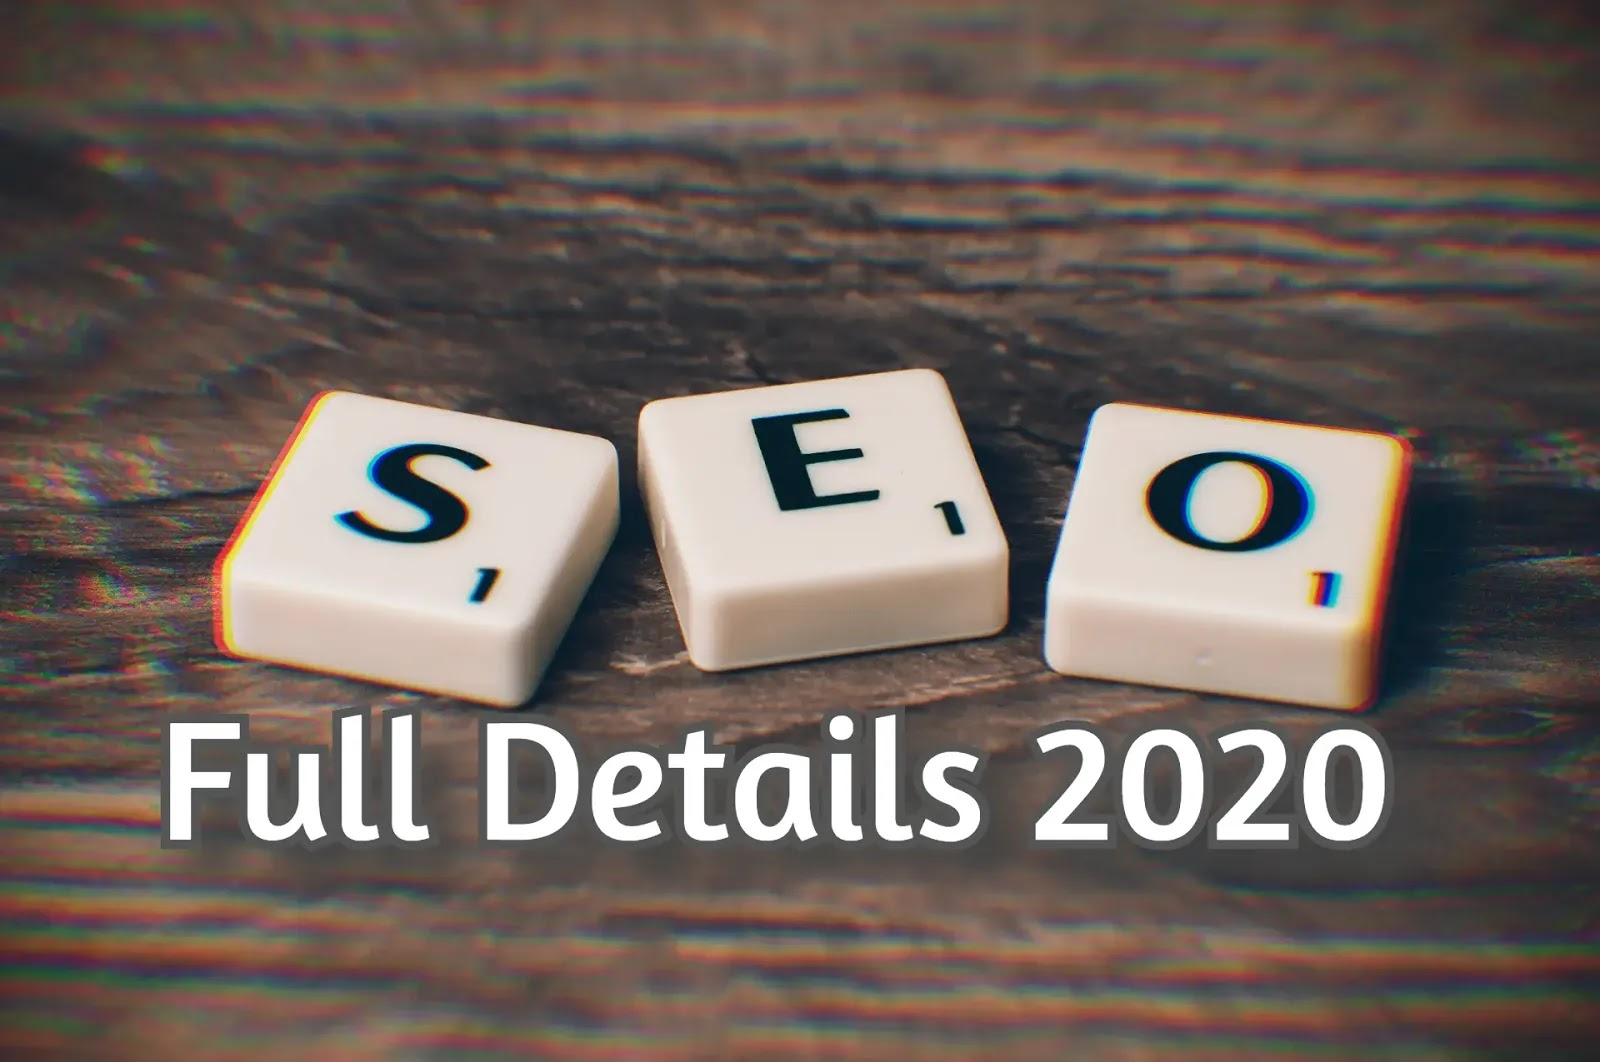 What is SEO? Full Details About Search Engine Optimization 2020